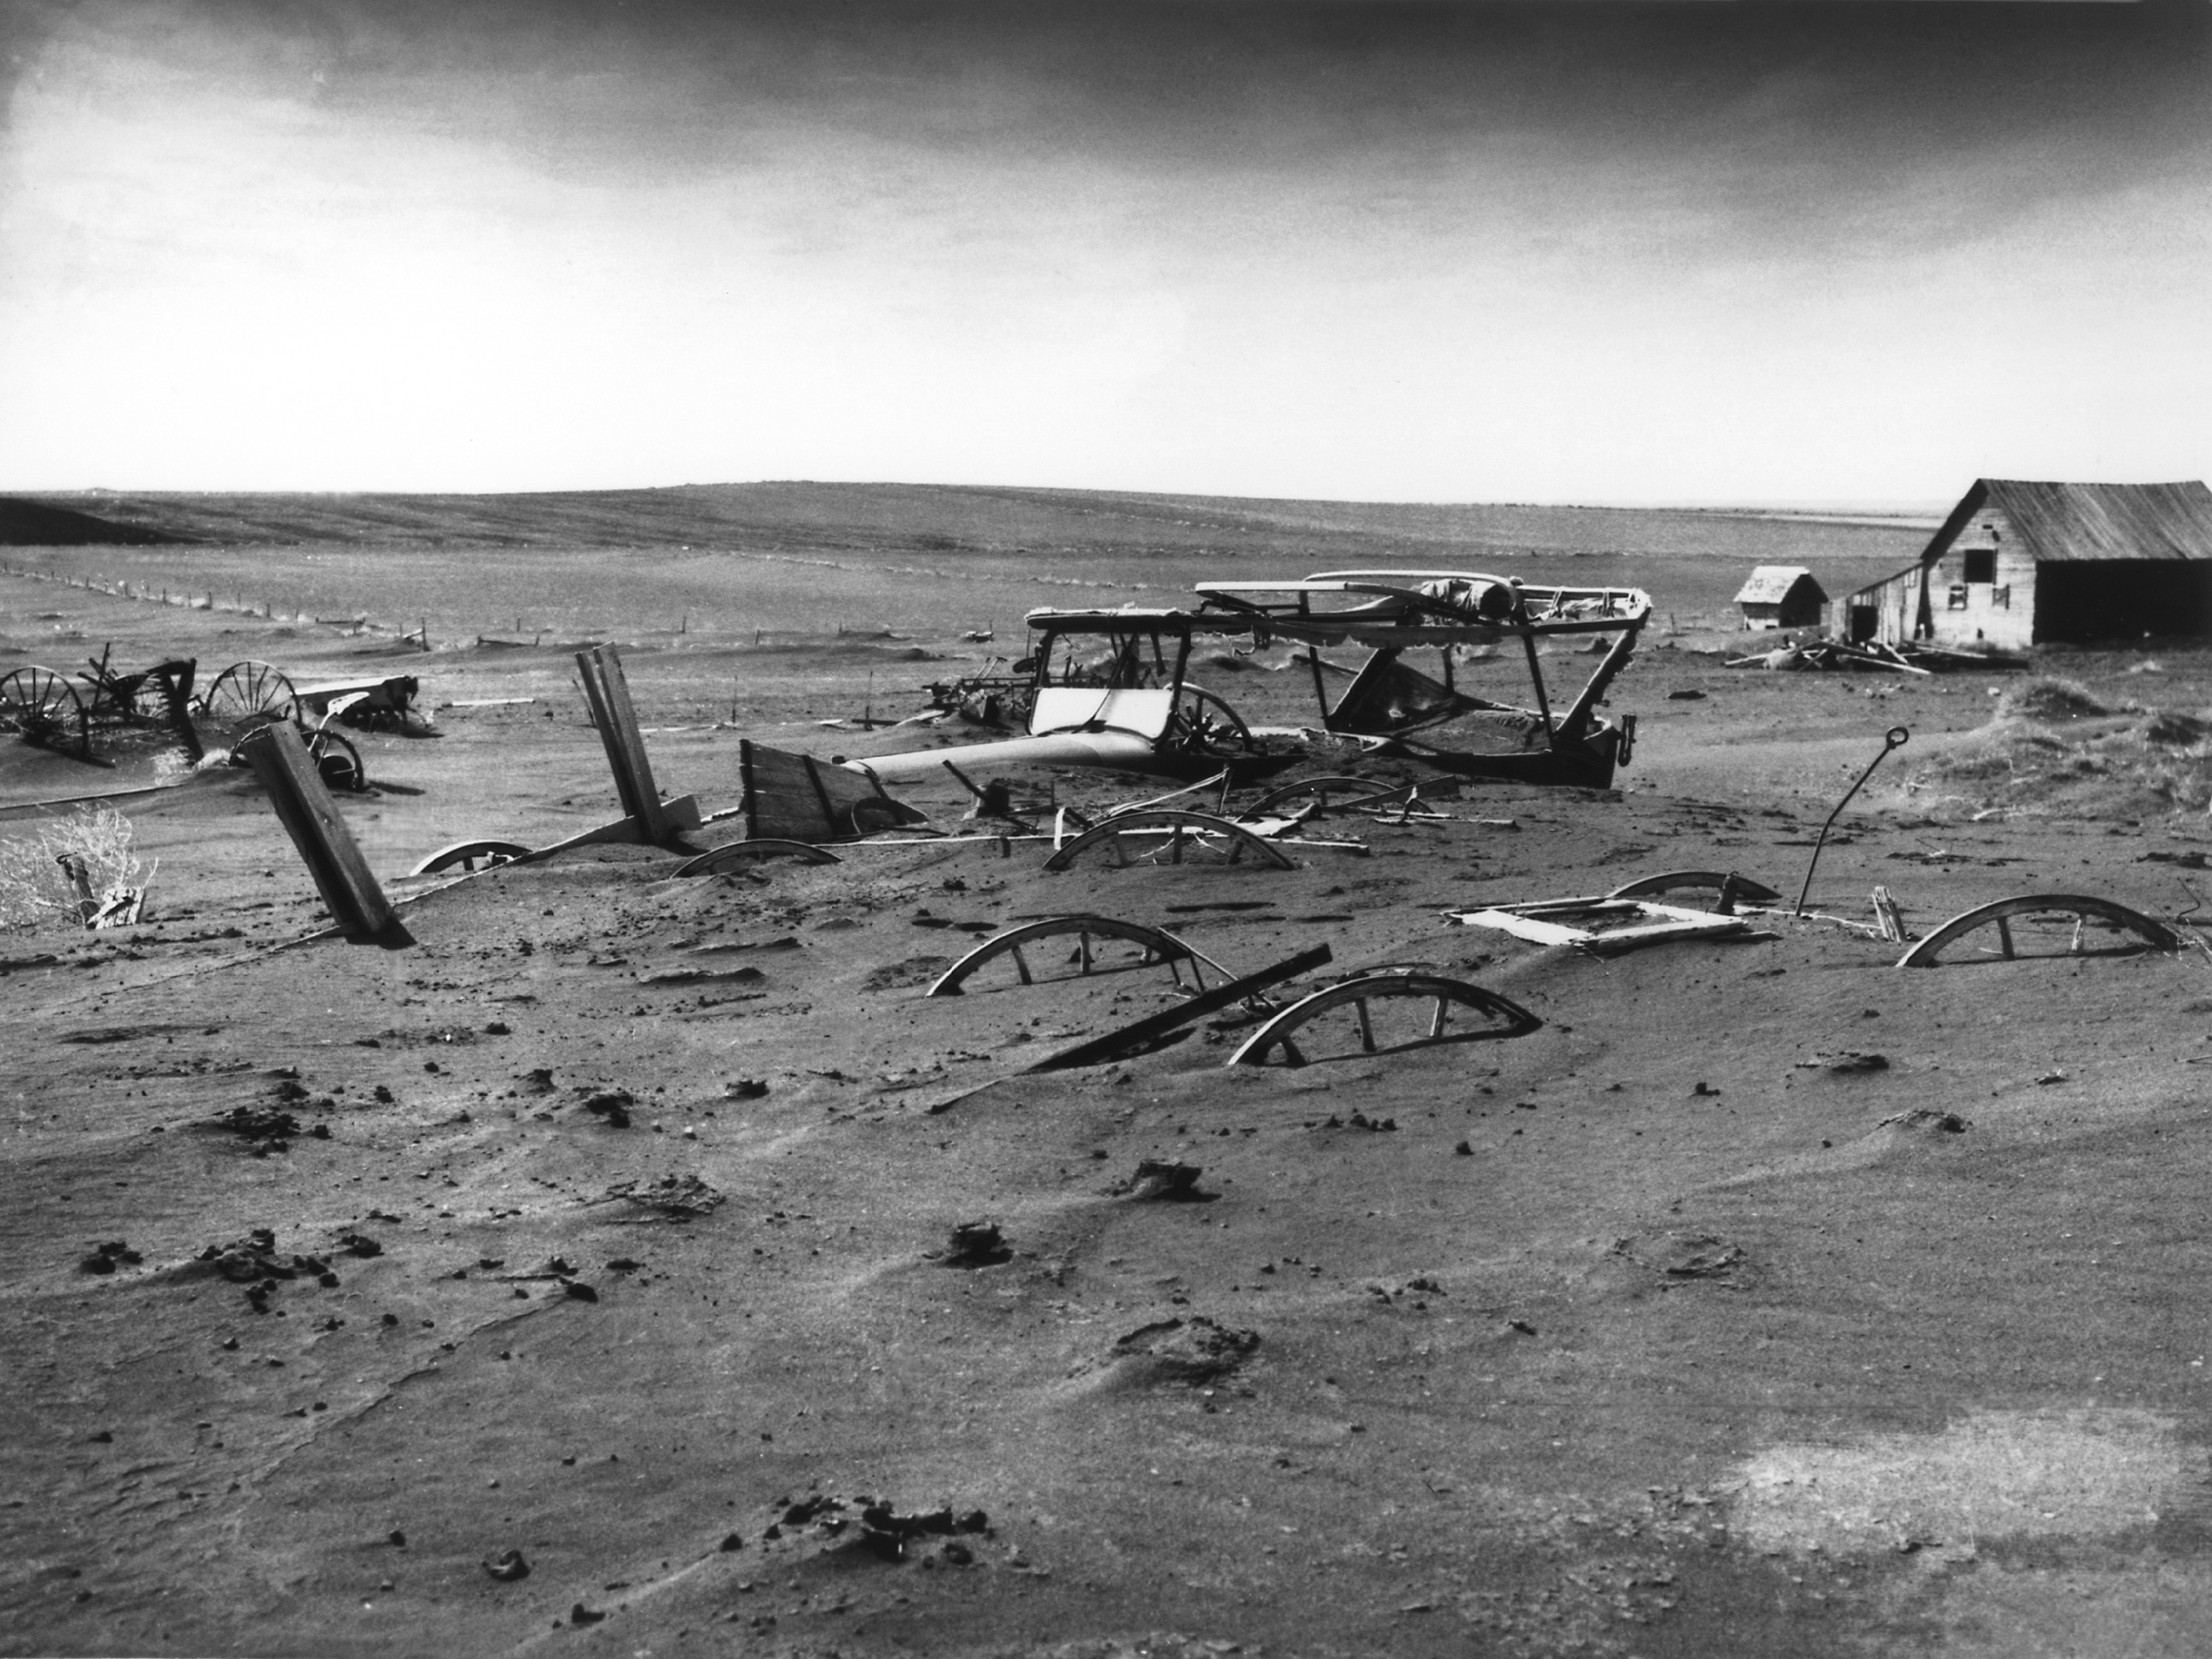 culture of poverty oscar lewis culture of poverty characteristics  south dakota a south dakota farm during the dust bowl 1936